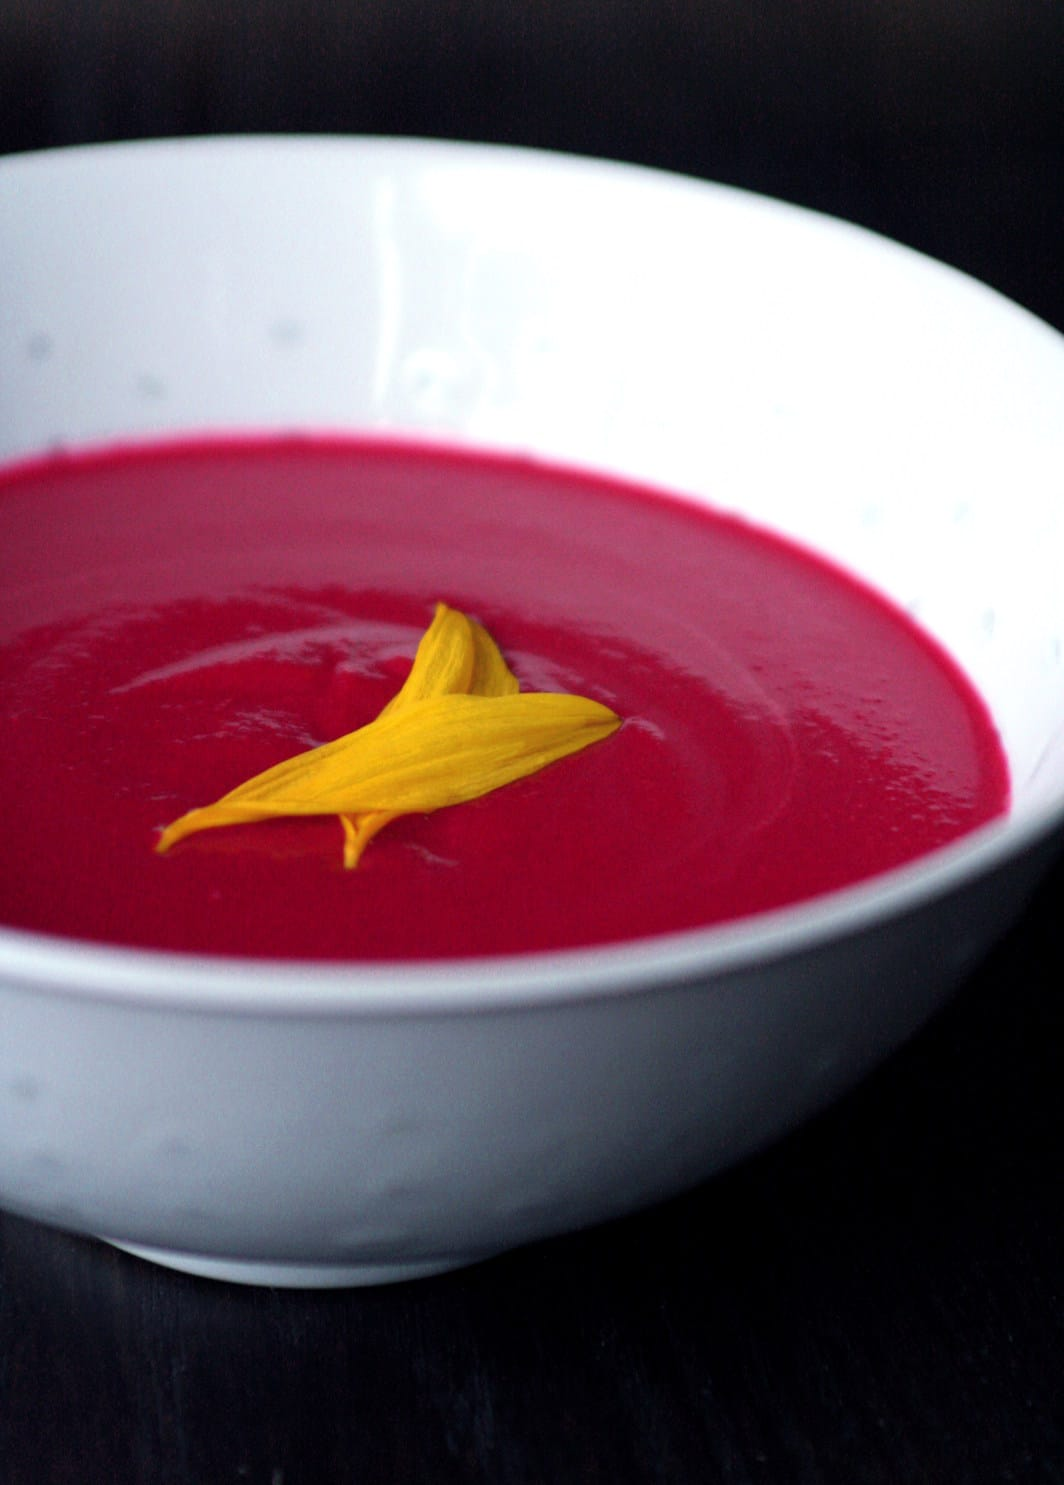 How To Make Dr. Fuhrman-style Beet & Cauliflower Dill Soup